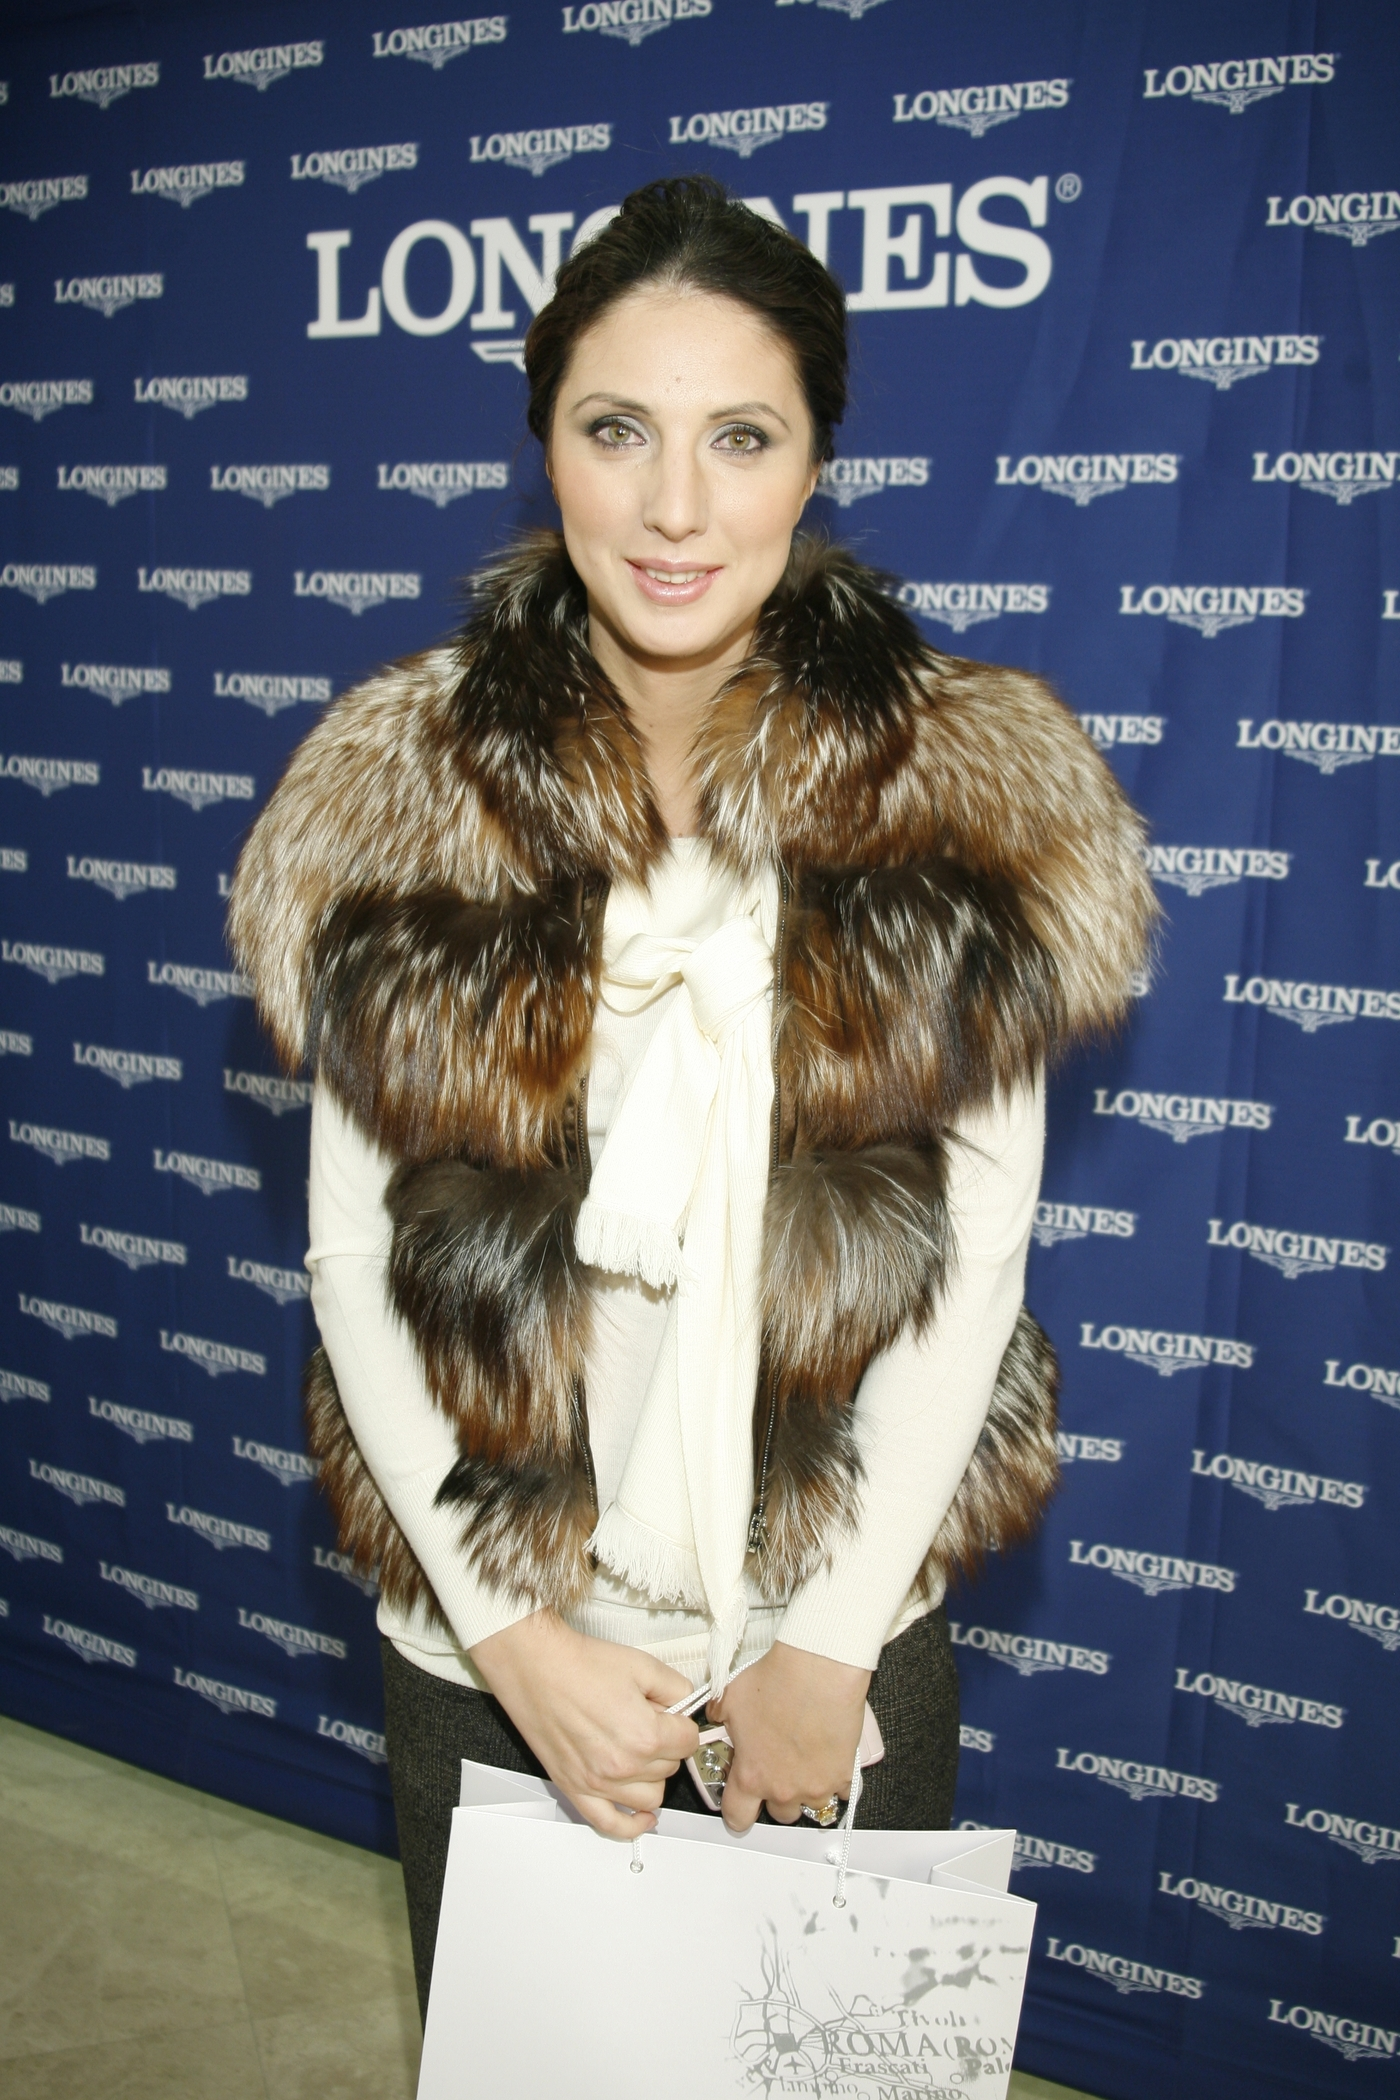 Longines Corporate Event: Longines DolceVita - New interpretation of contemporary elegance lauched in Russia 1